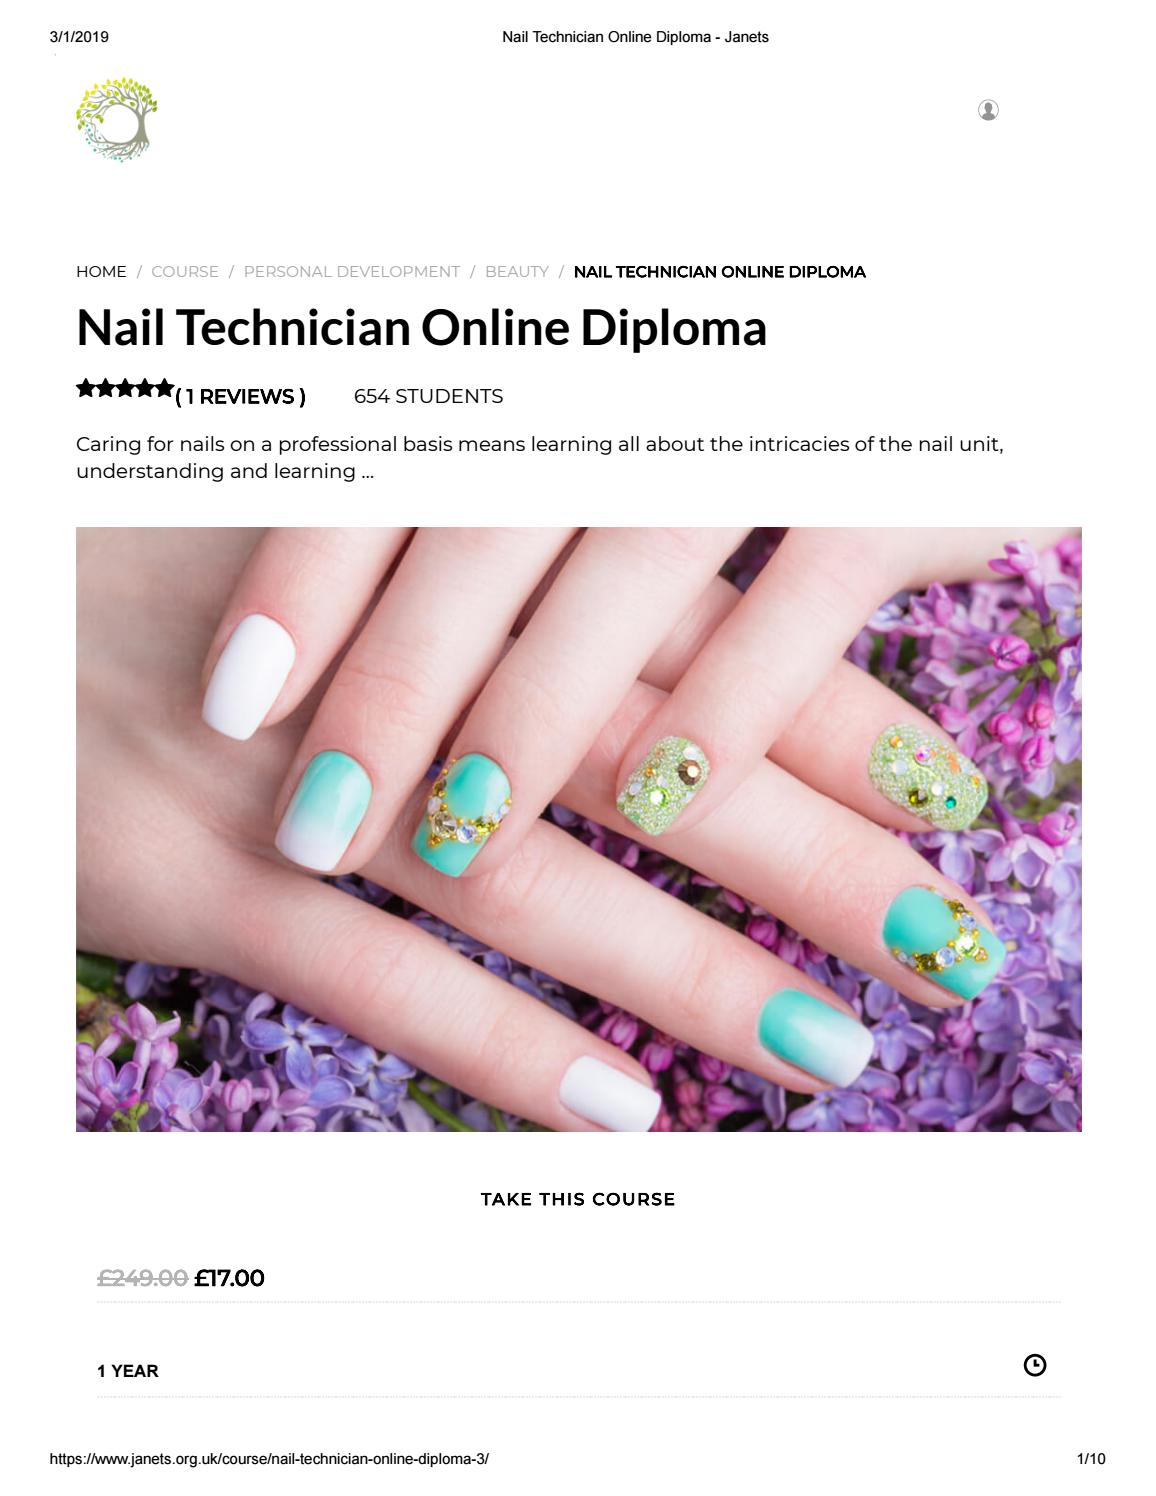 Pdf Of Nail Technician Online Diploma Janets By Shahriar